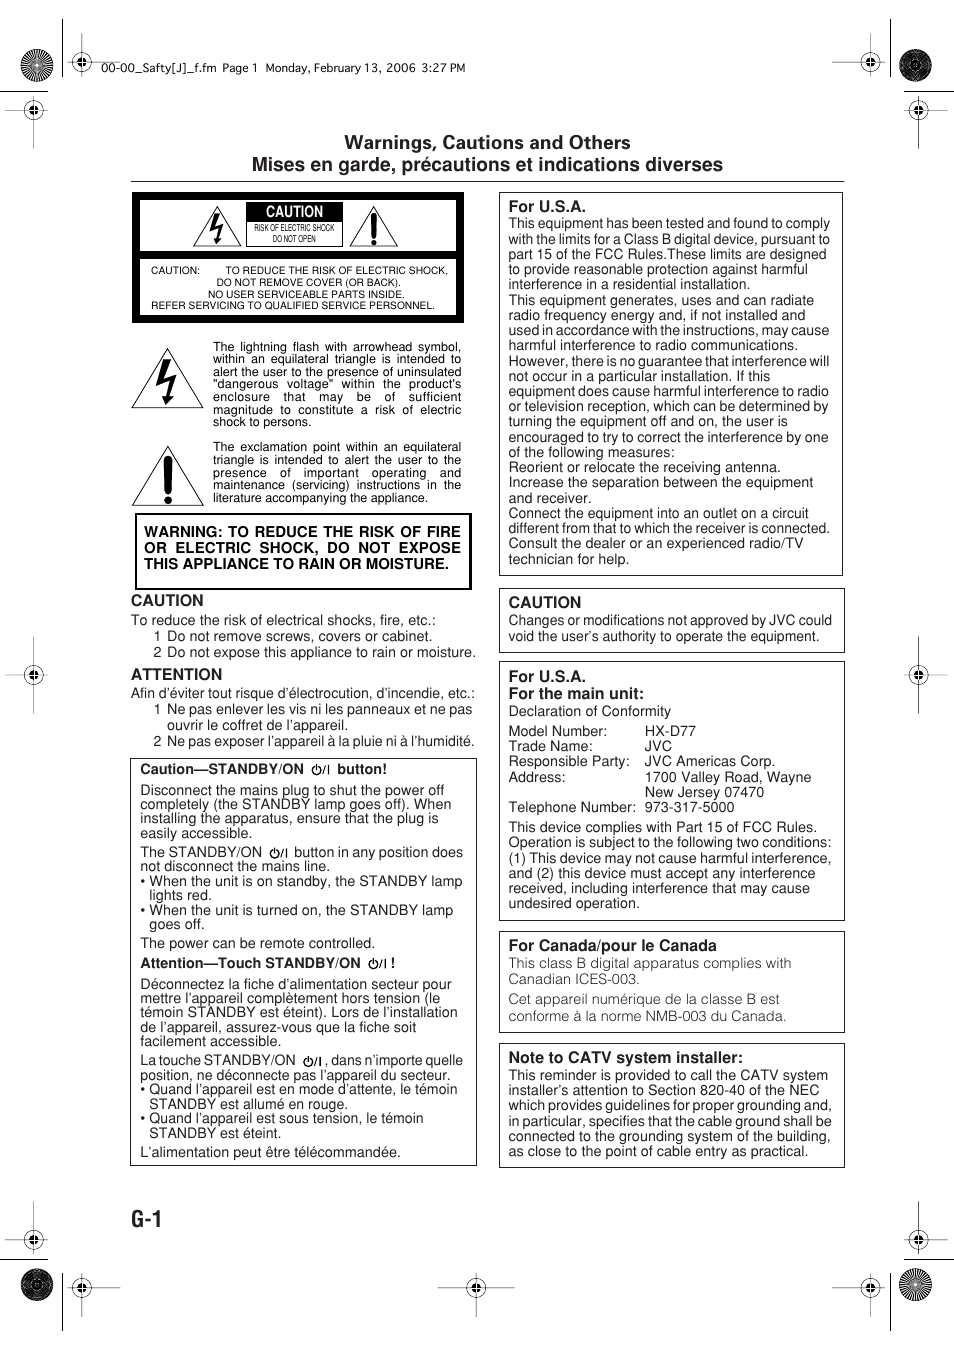 Jvc hx-d7 instructions manual pdf download.